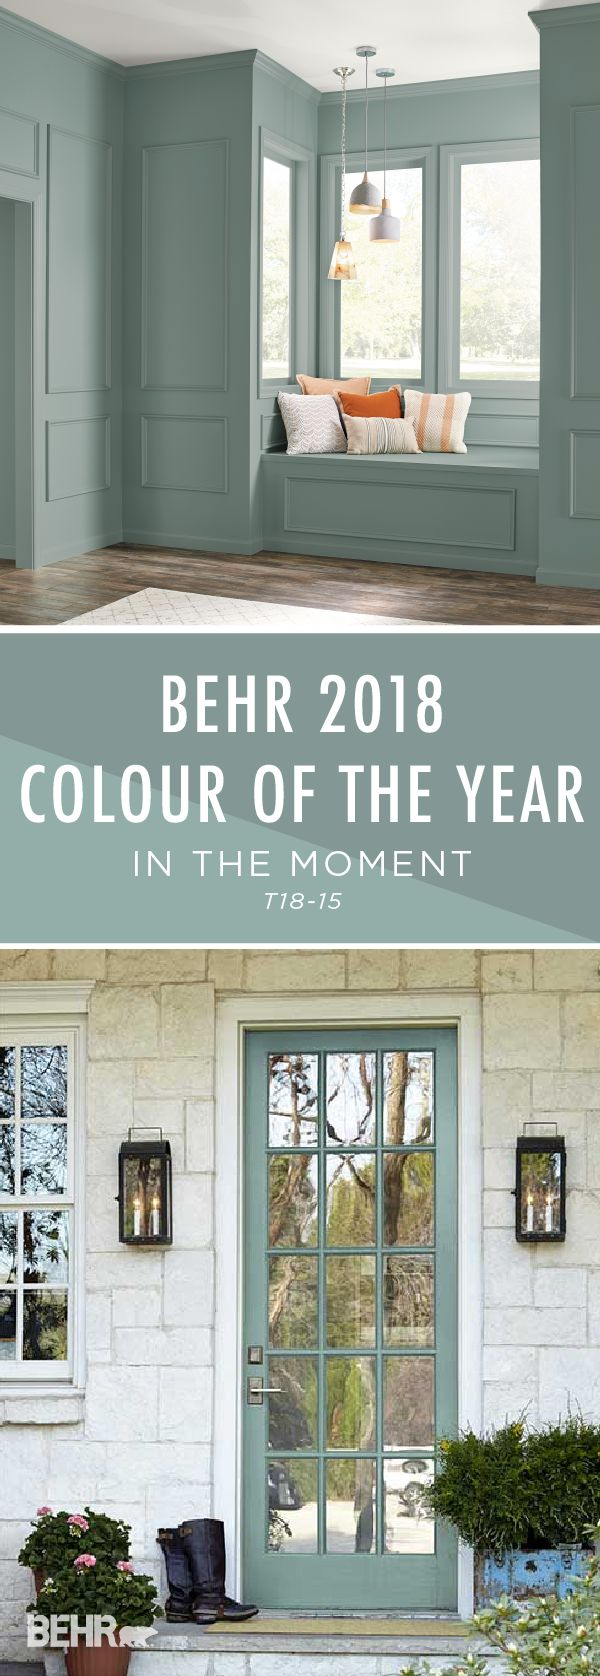 Introducing the BEHR 2018 Colour of the Year: In The Moment. With undertones of blue, gray, and green, this calming paint colour helps to create a relaxing space in your home, promoting mindfulness and introspection. Include this versatile paint colour in interior and exterior DIY home makeover projects to turn your house into a tranquil sanctuary.